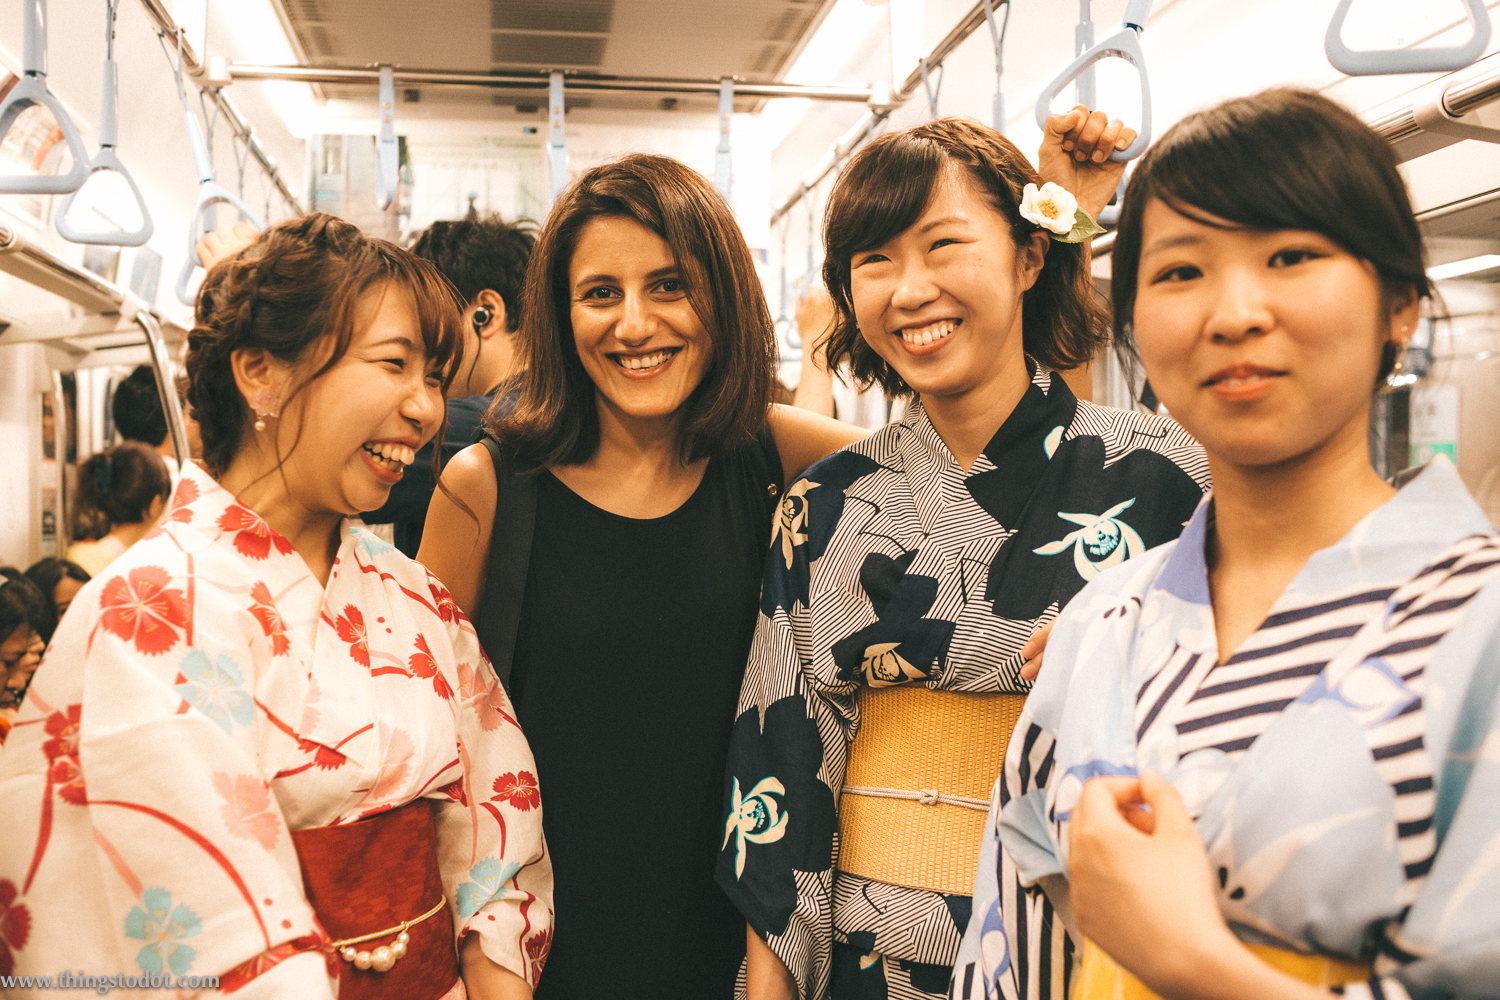 With Japanese girls in traditional clothing, in metro to the Adachi Fireworks on Arakawa river, Tokyo, Japan. Image©www.thingstodot.com.